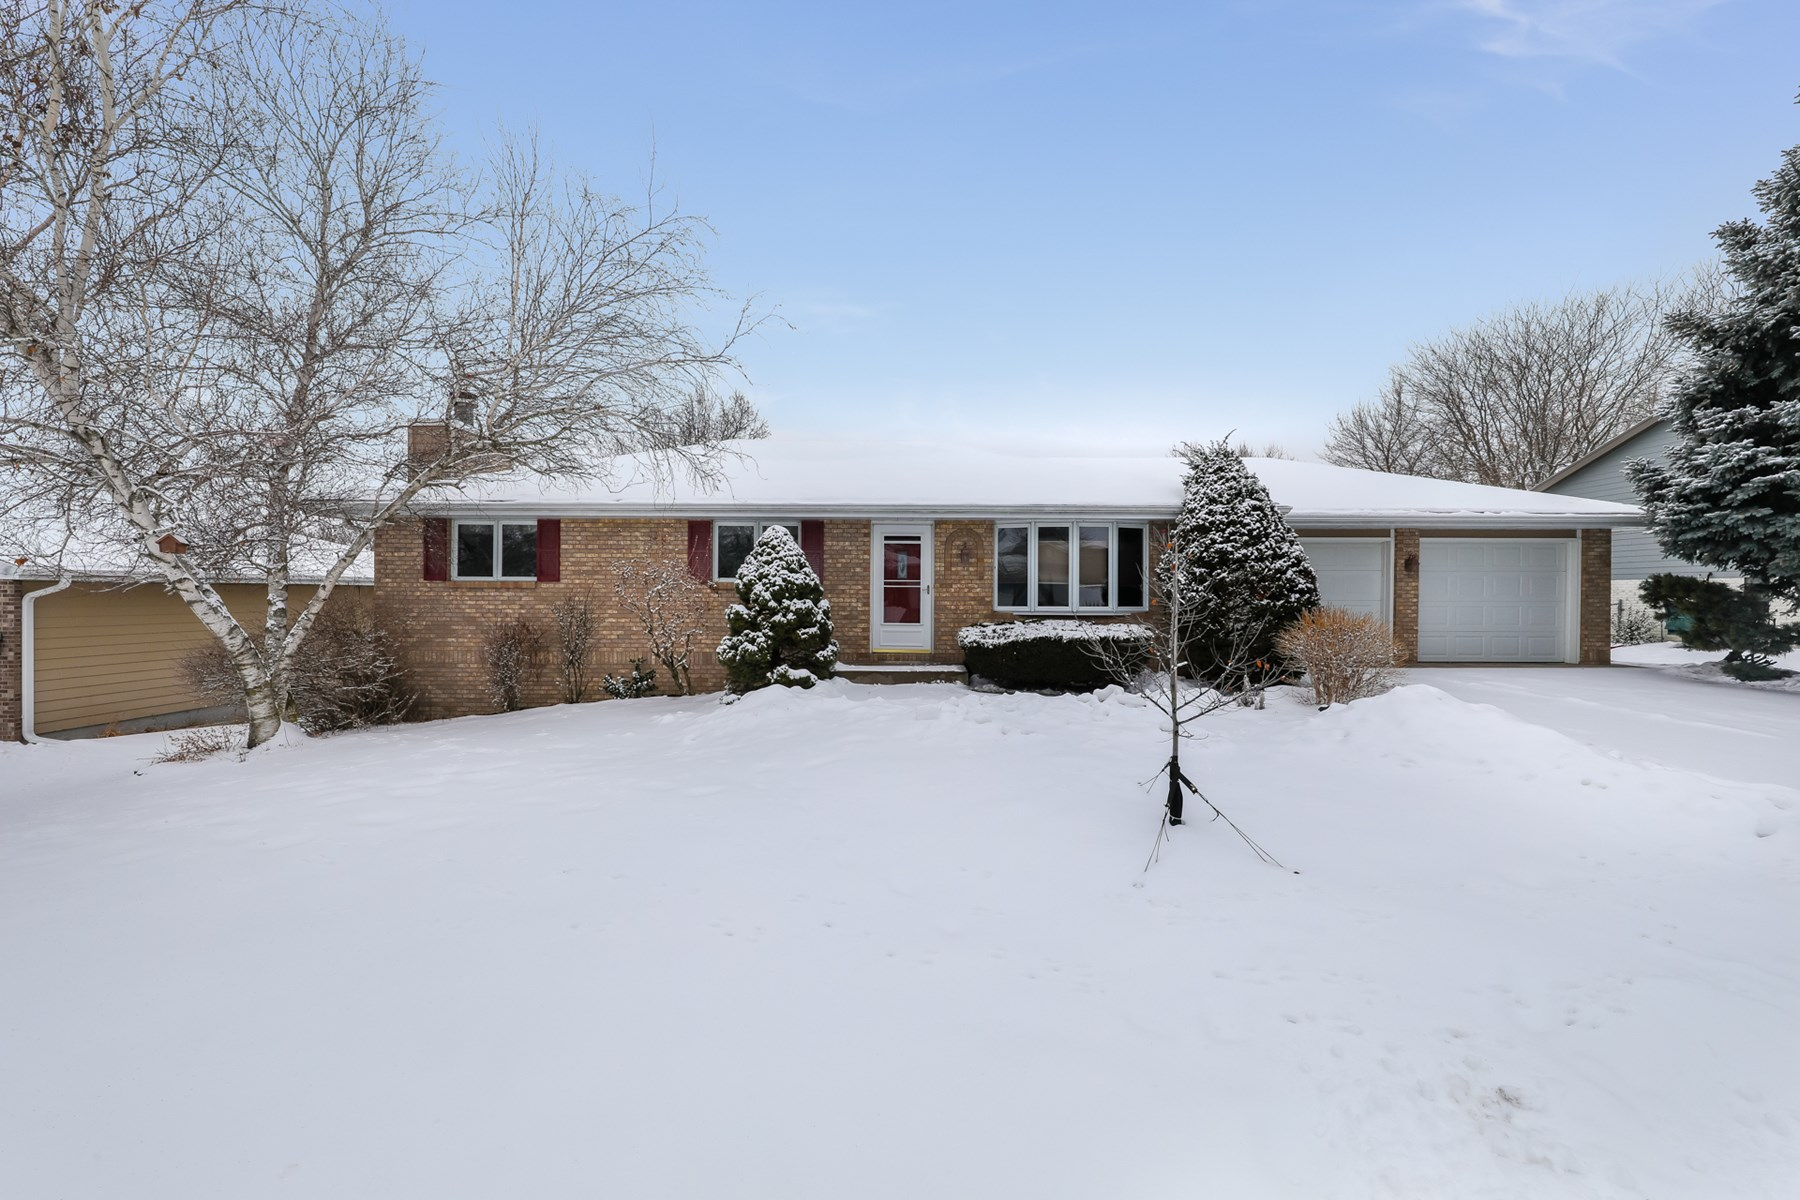 Seward, NE ranch style home for sale